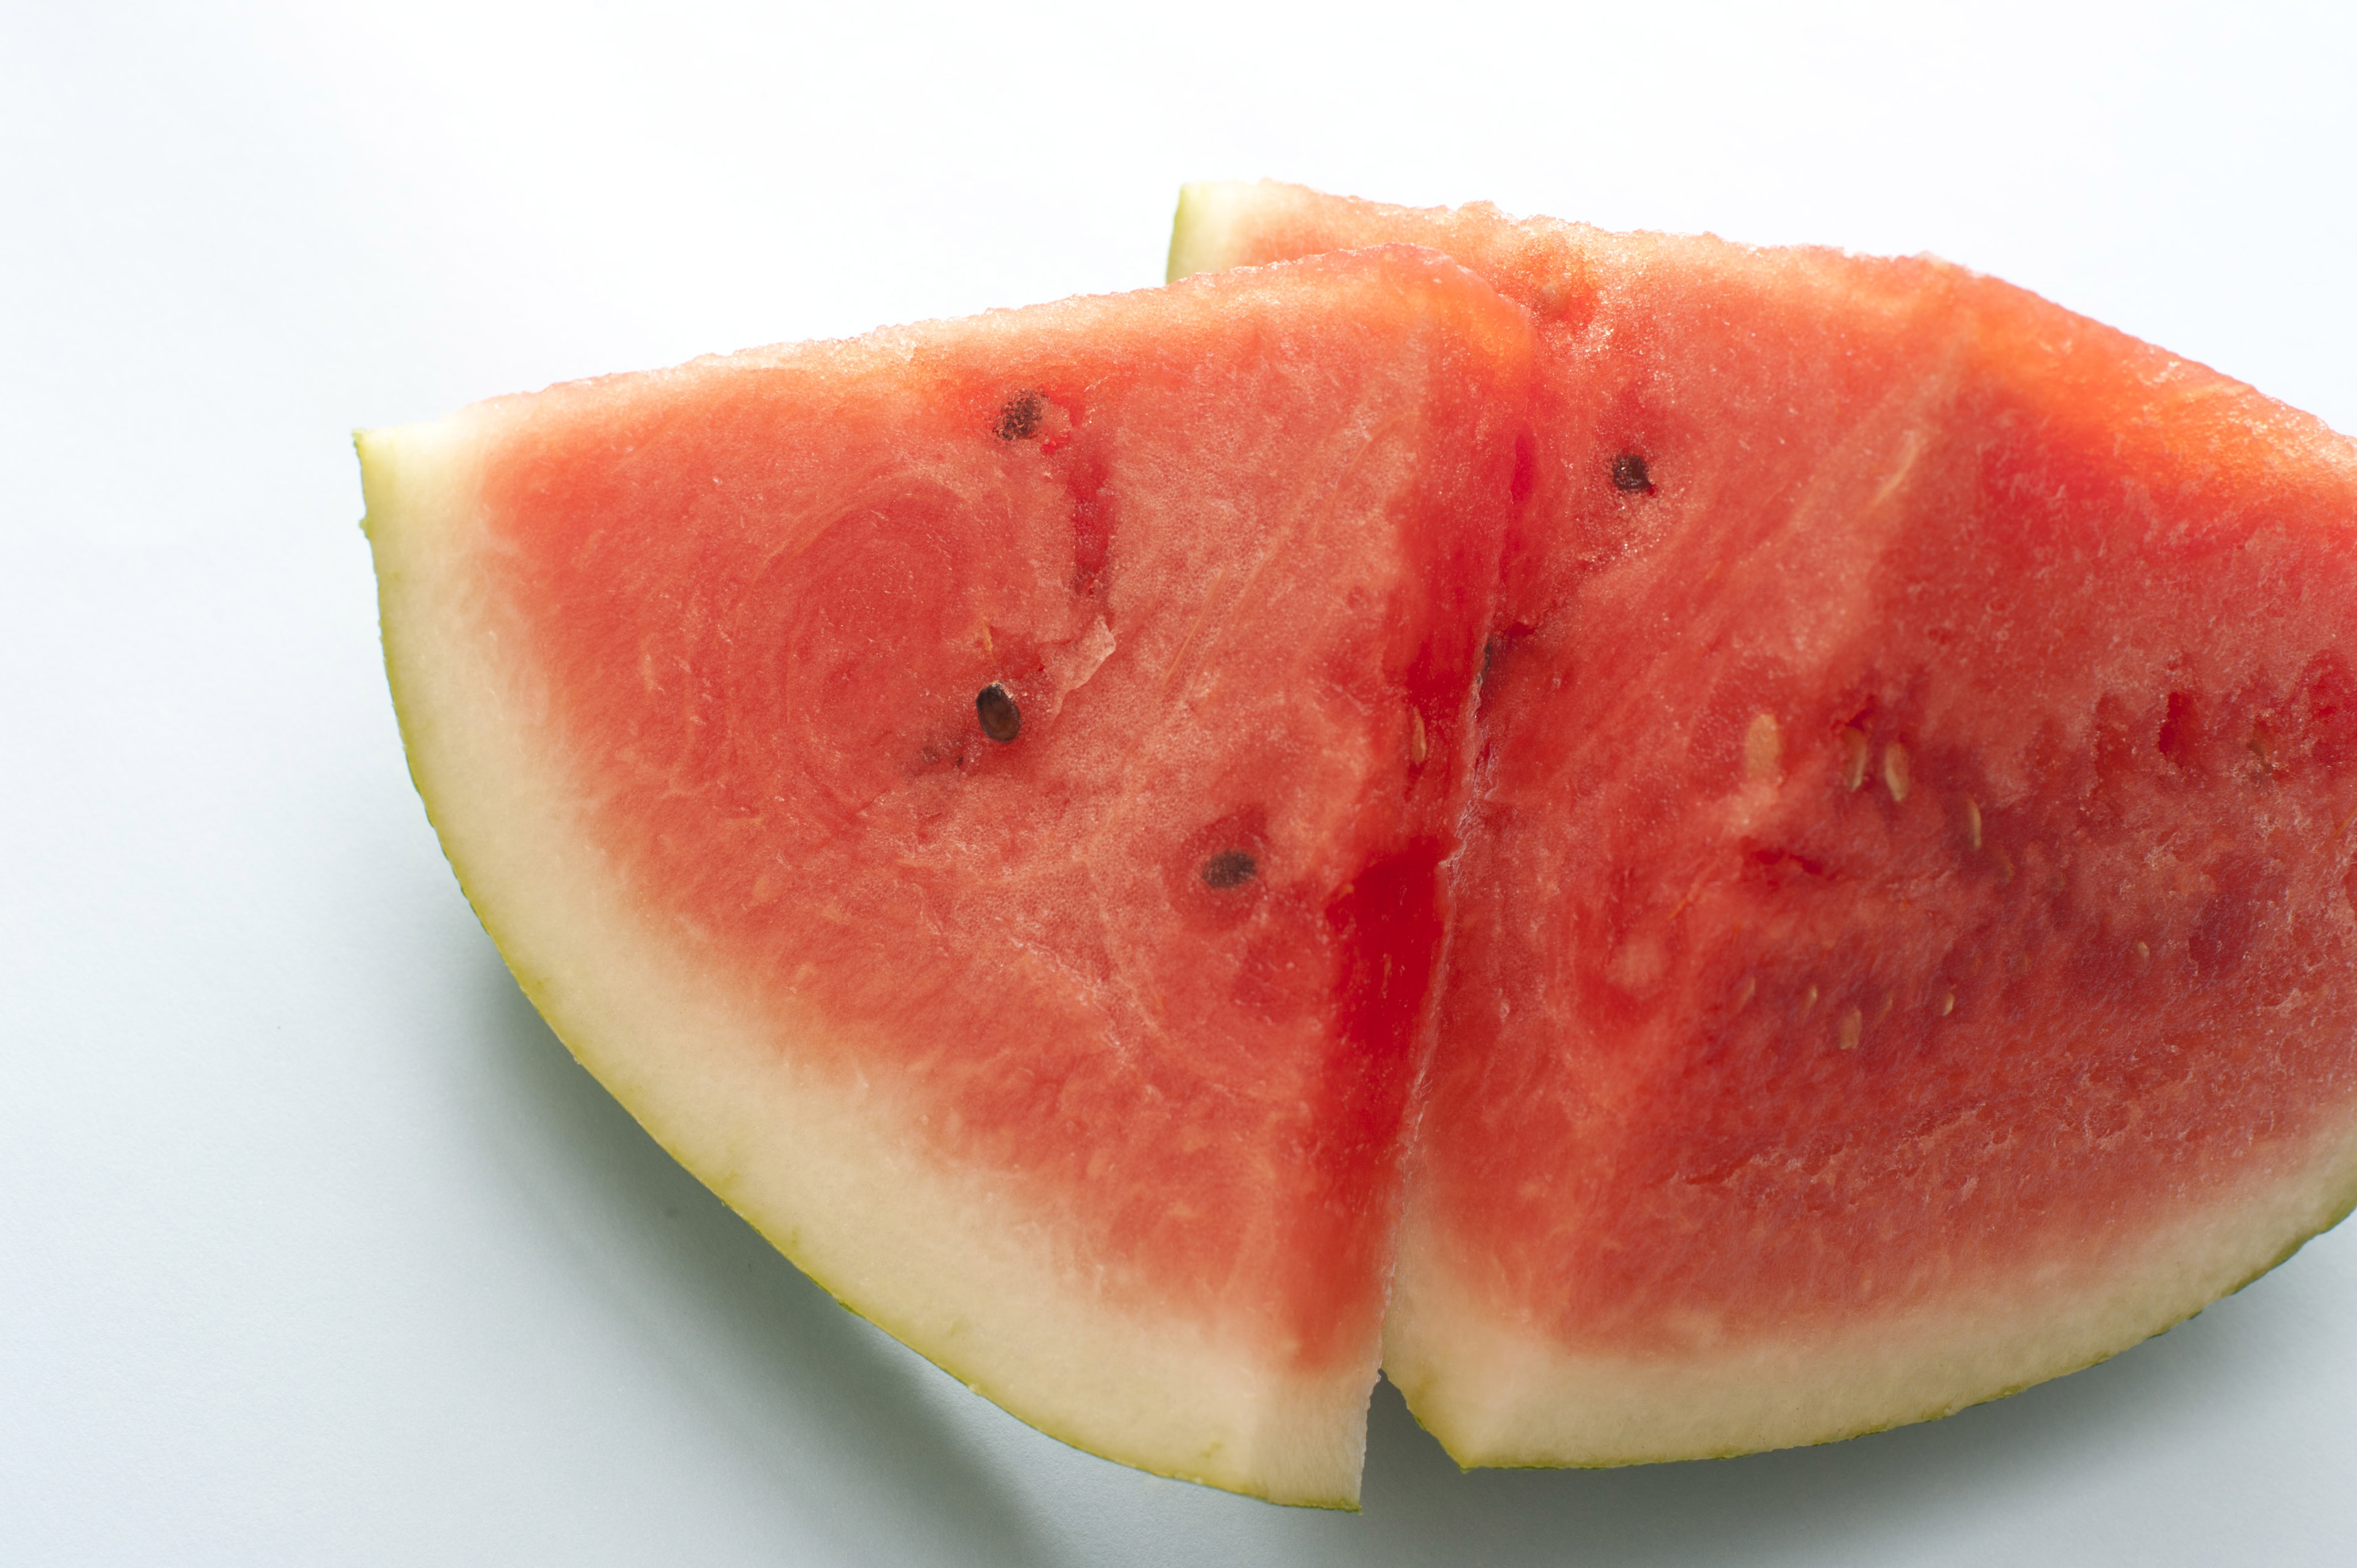 A sliced and quartered fresh, juicy watermelon isolated on a white background with copy space.